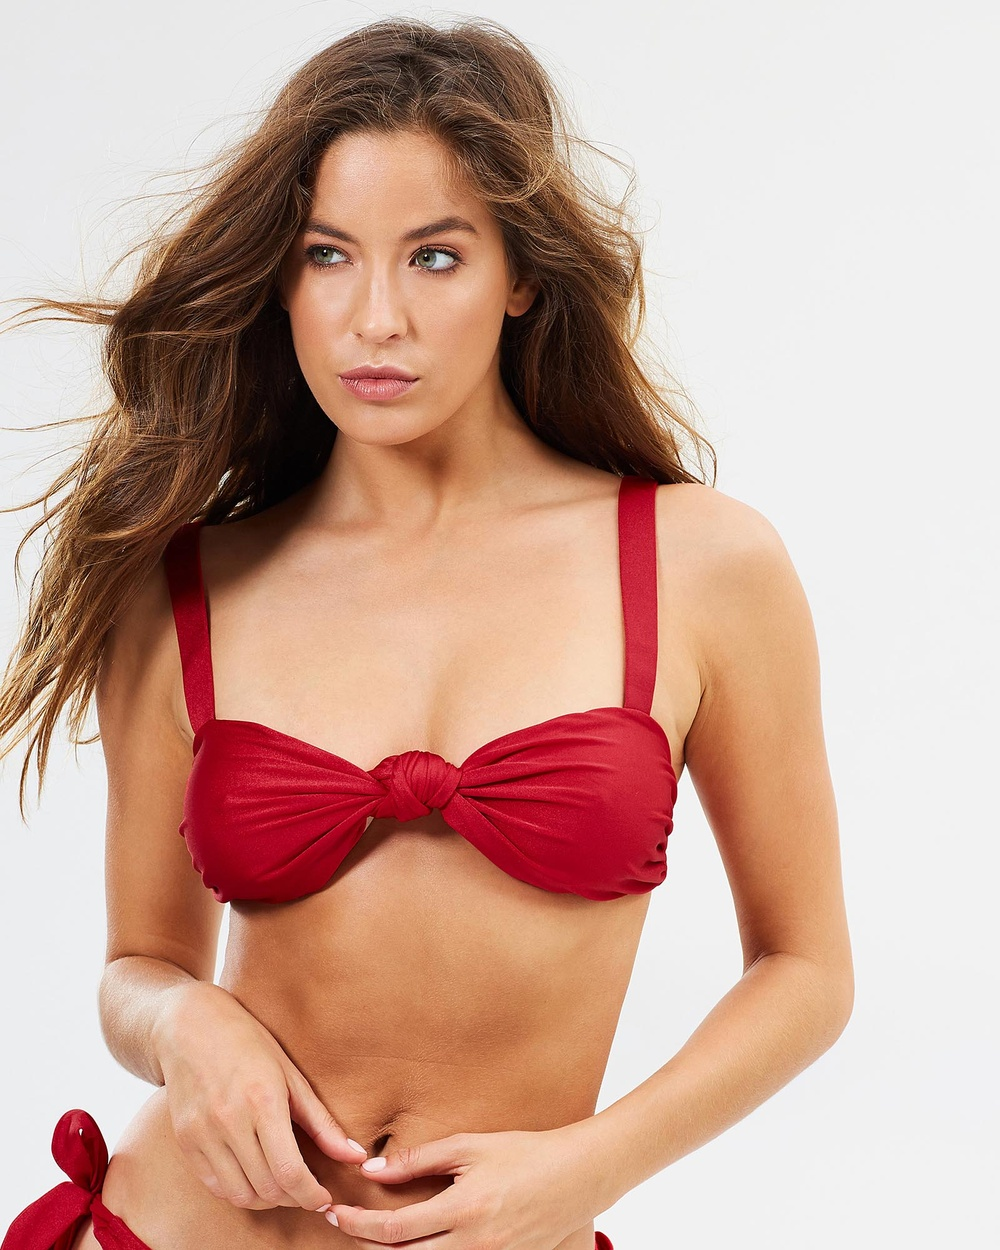 We The Dreamrs Capri Bikini Top Bikini Tops Ruby Red Capri Bikini Top